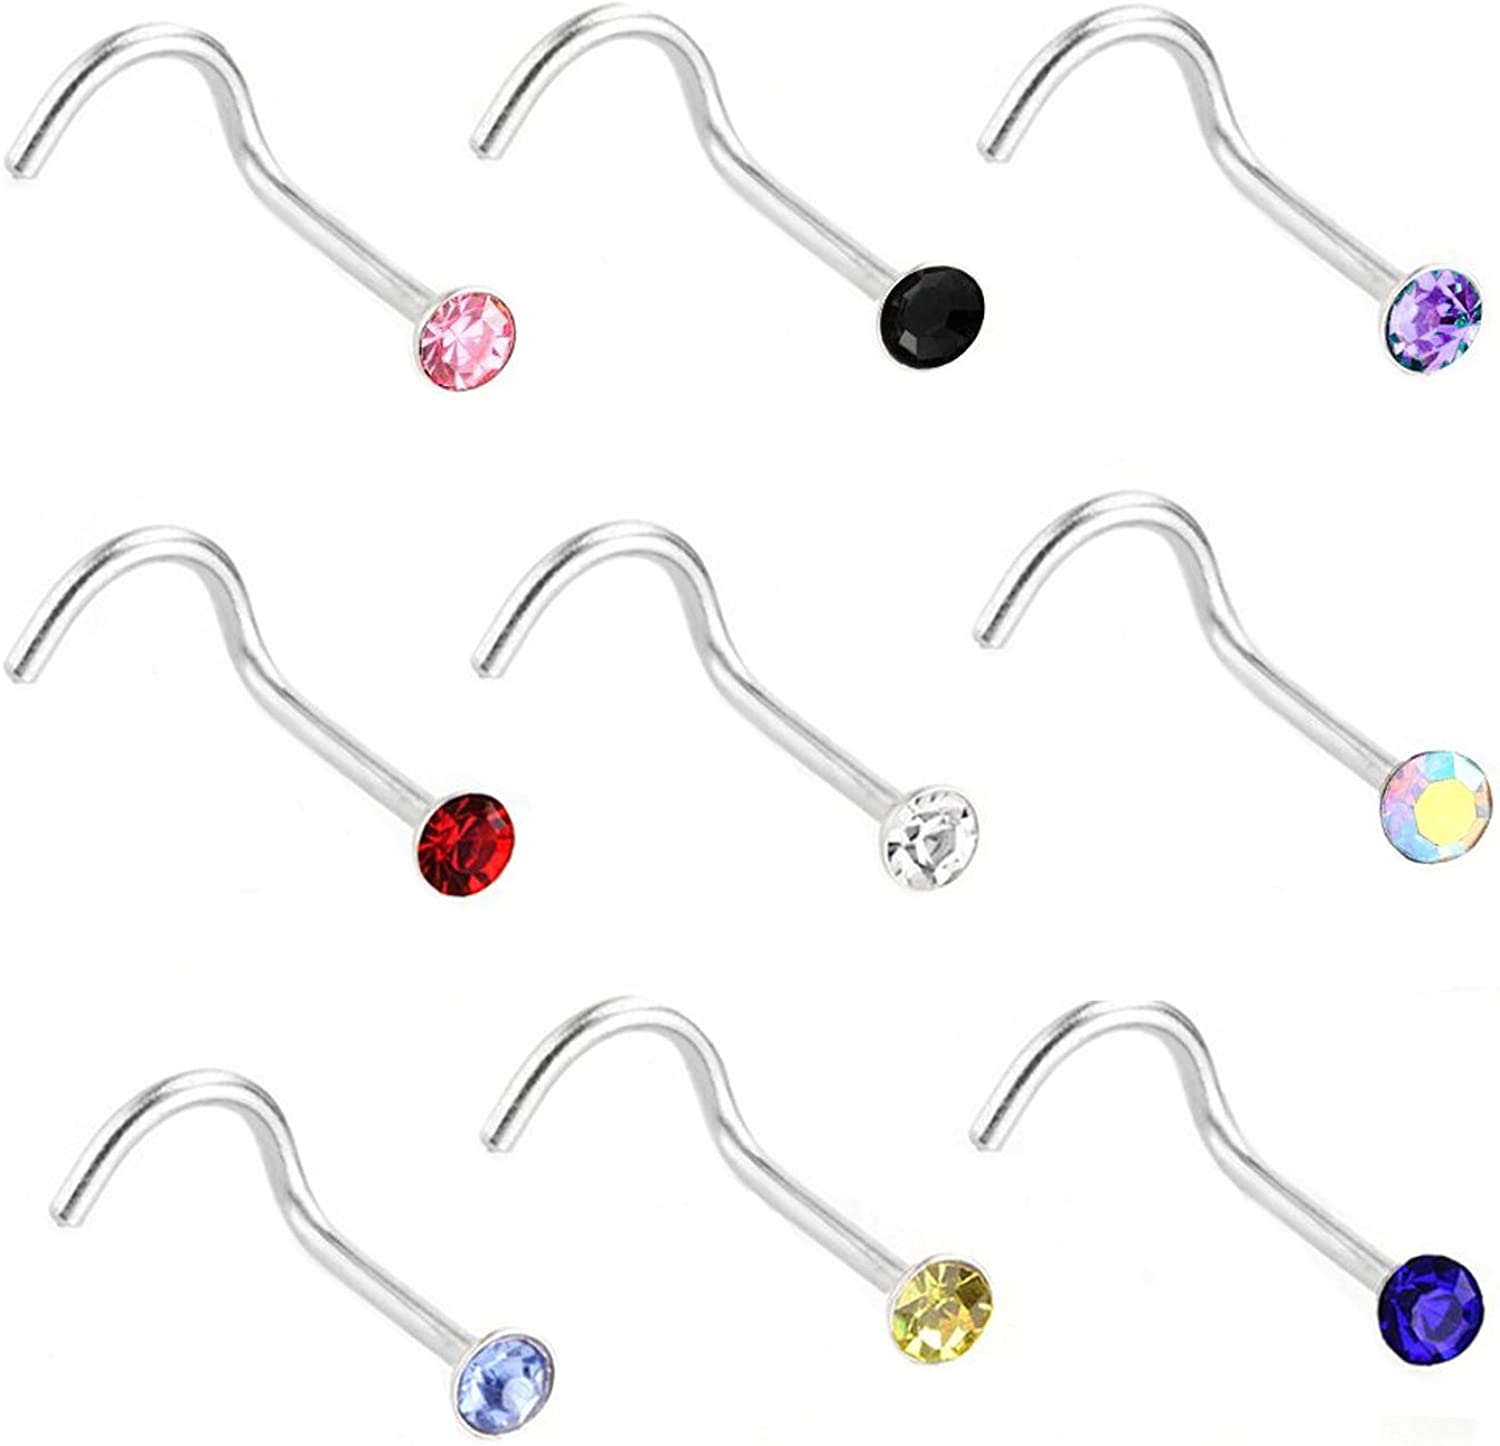 22G 60 Pcs Stainless Steel Nose Studs Rings Piercing Pin Body Jewelry 2.5mm 2.0mm 1.5mm